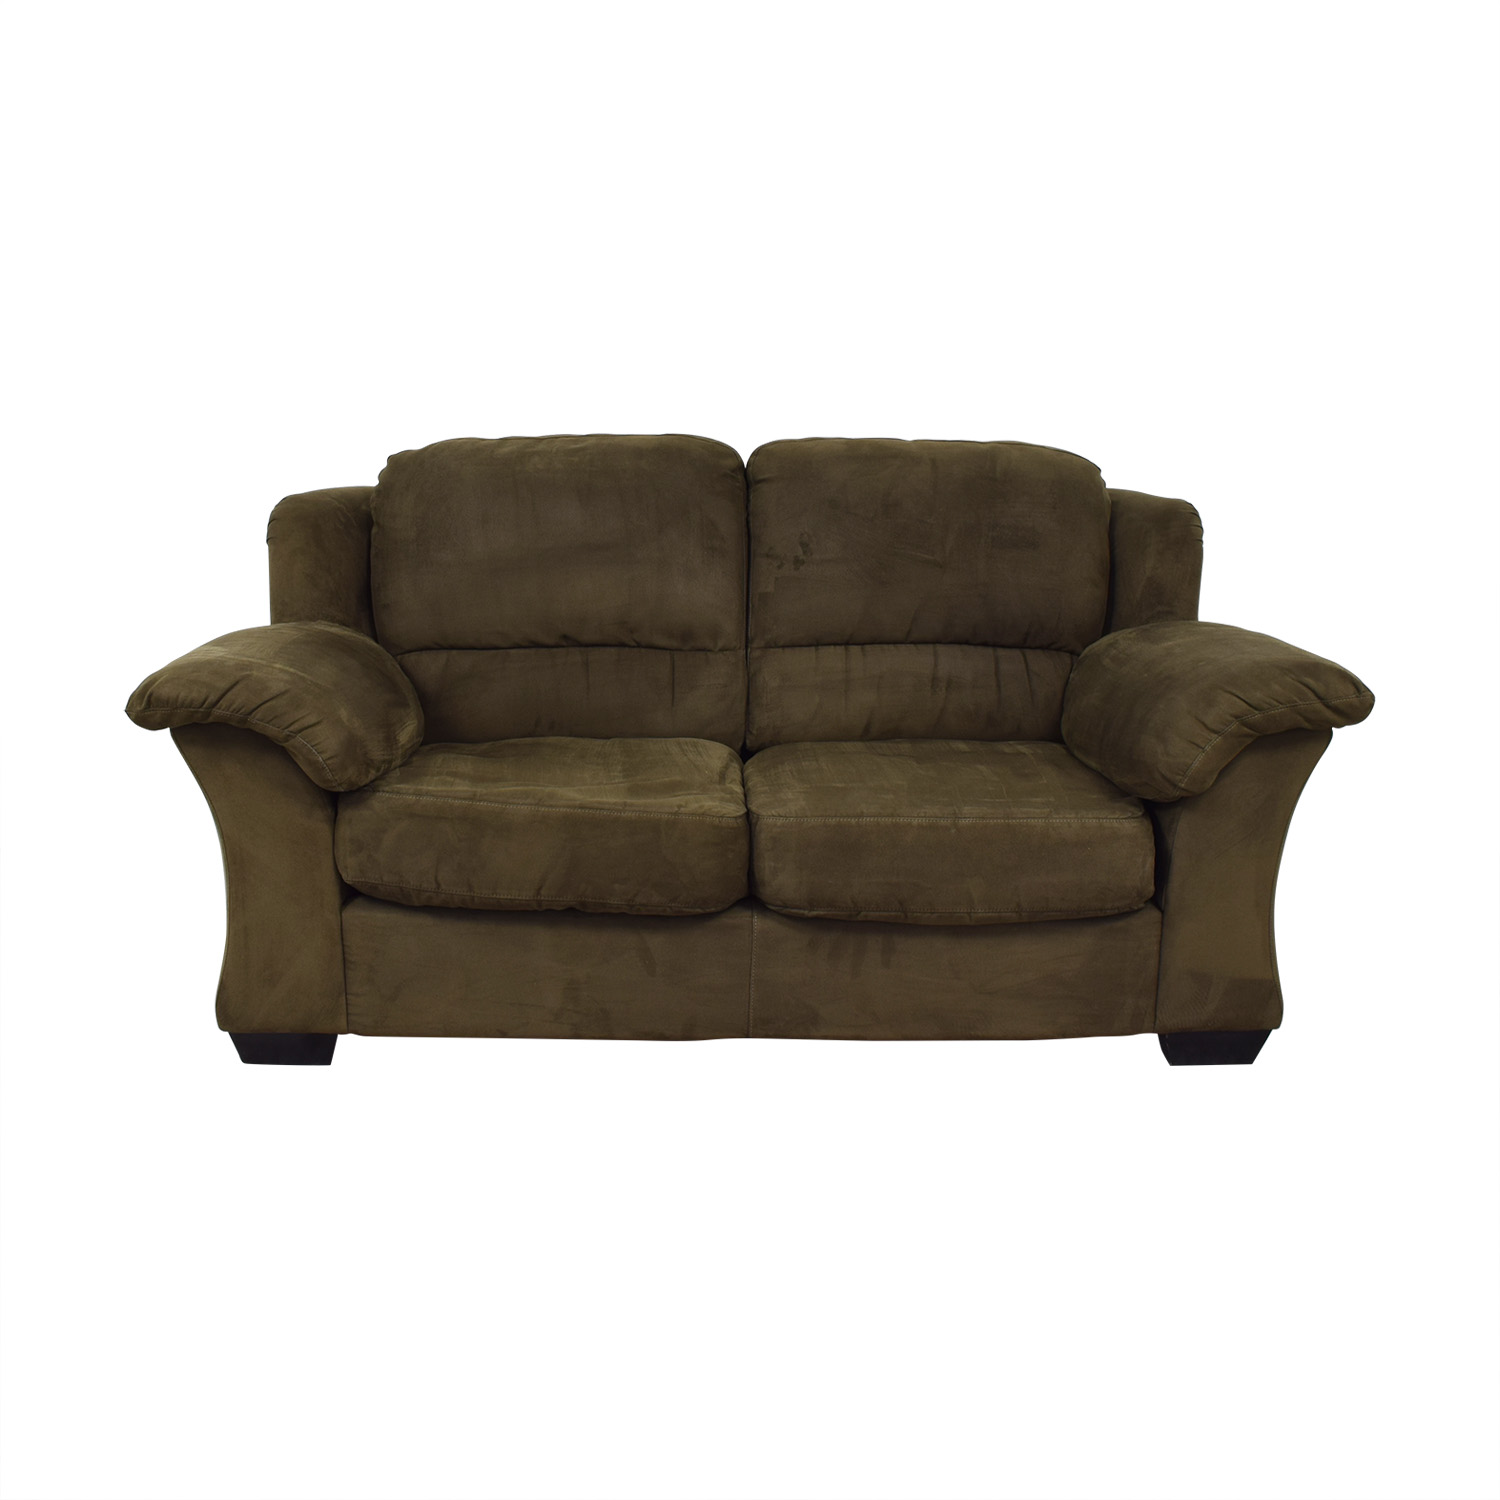 HM Richards Furniture HM Richards Furniture Loveseat used